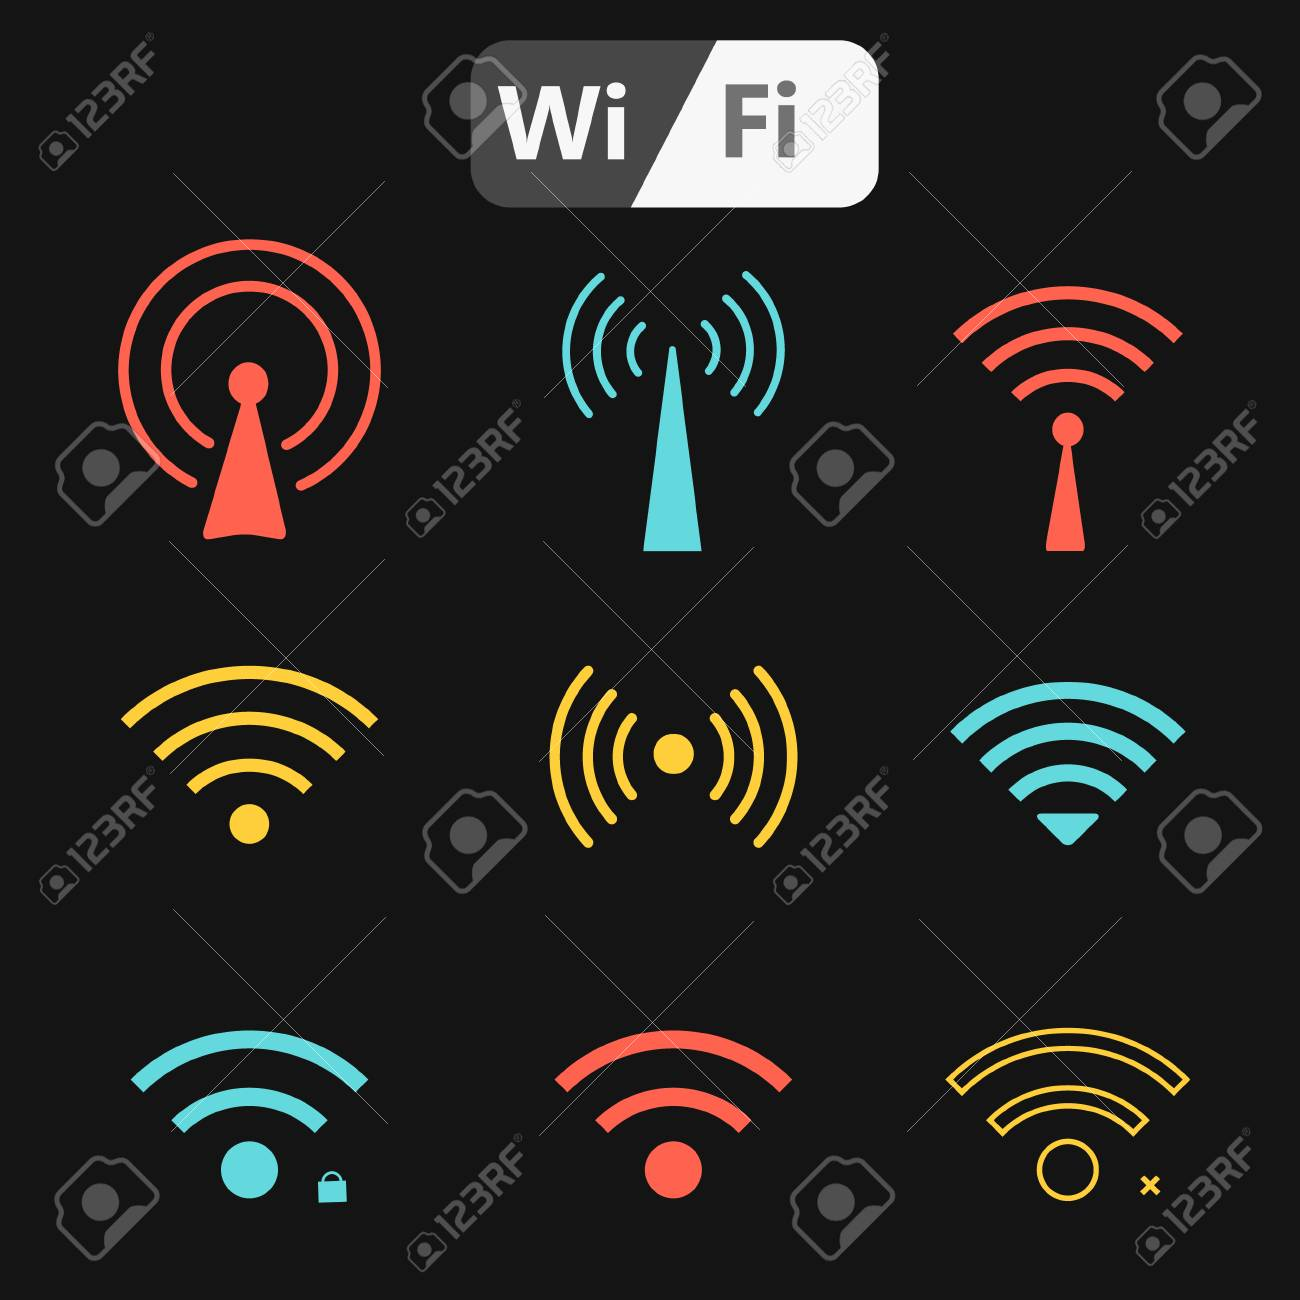 set of four wifi icons for business or commercial use royalty free